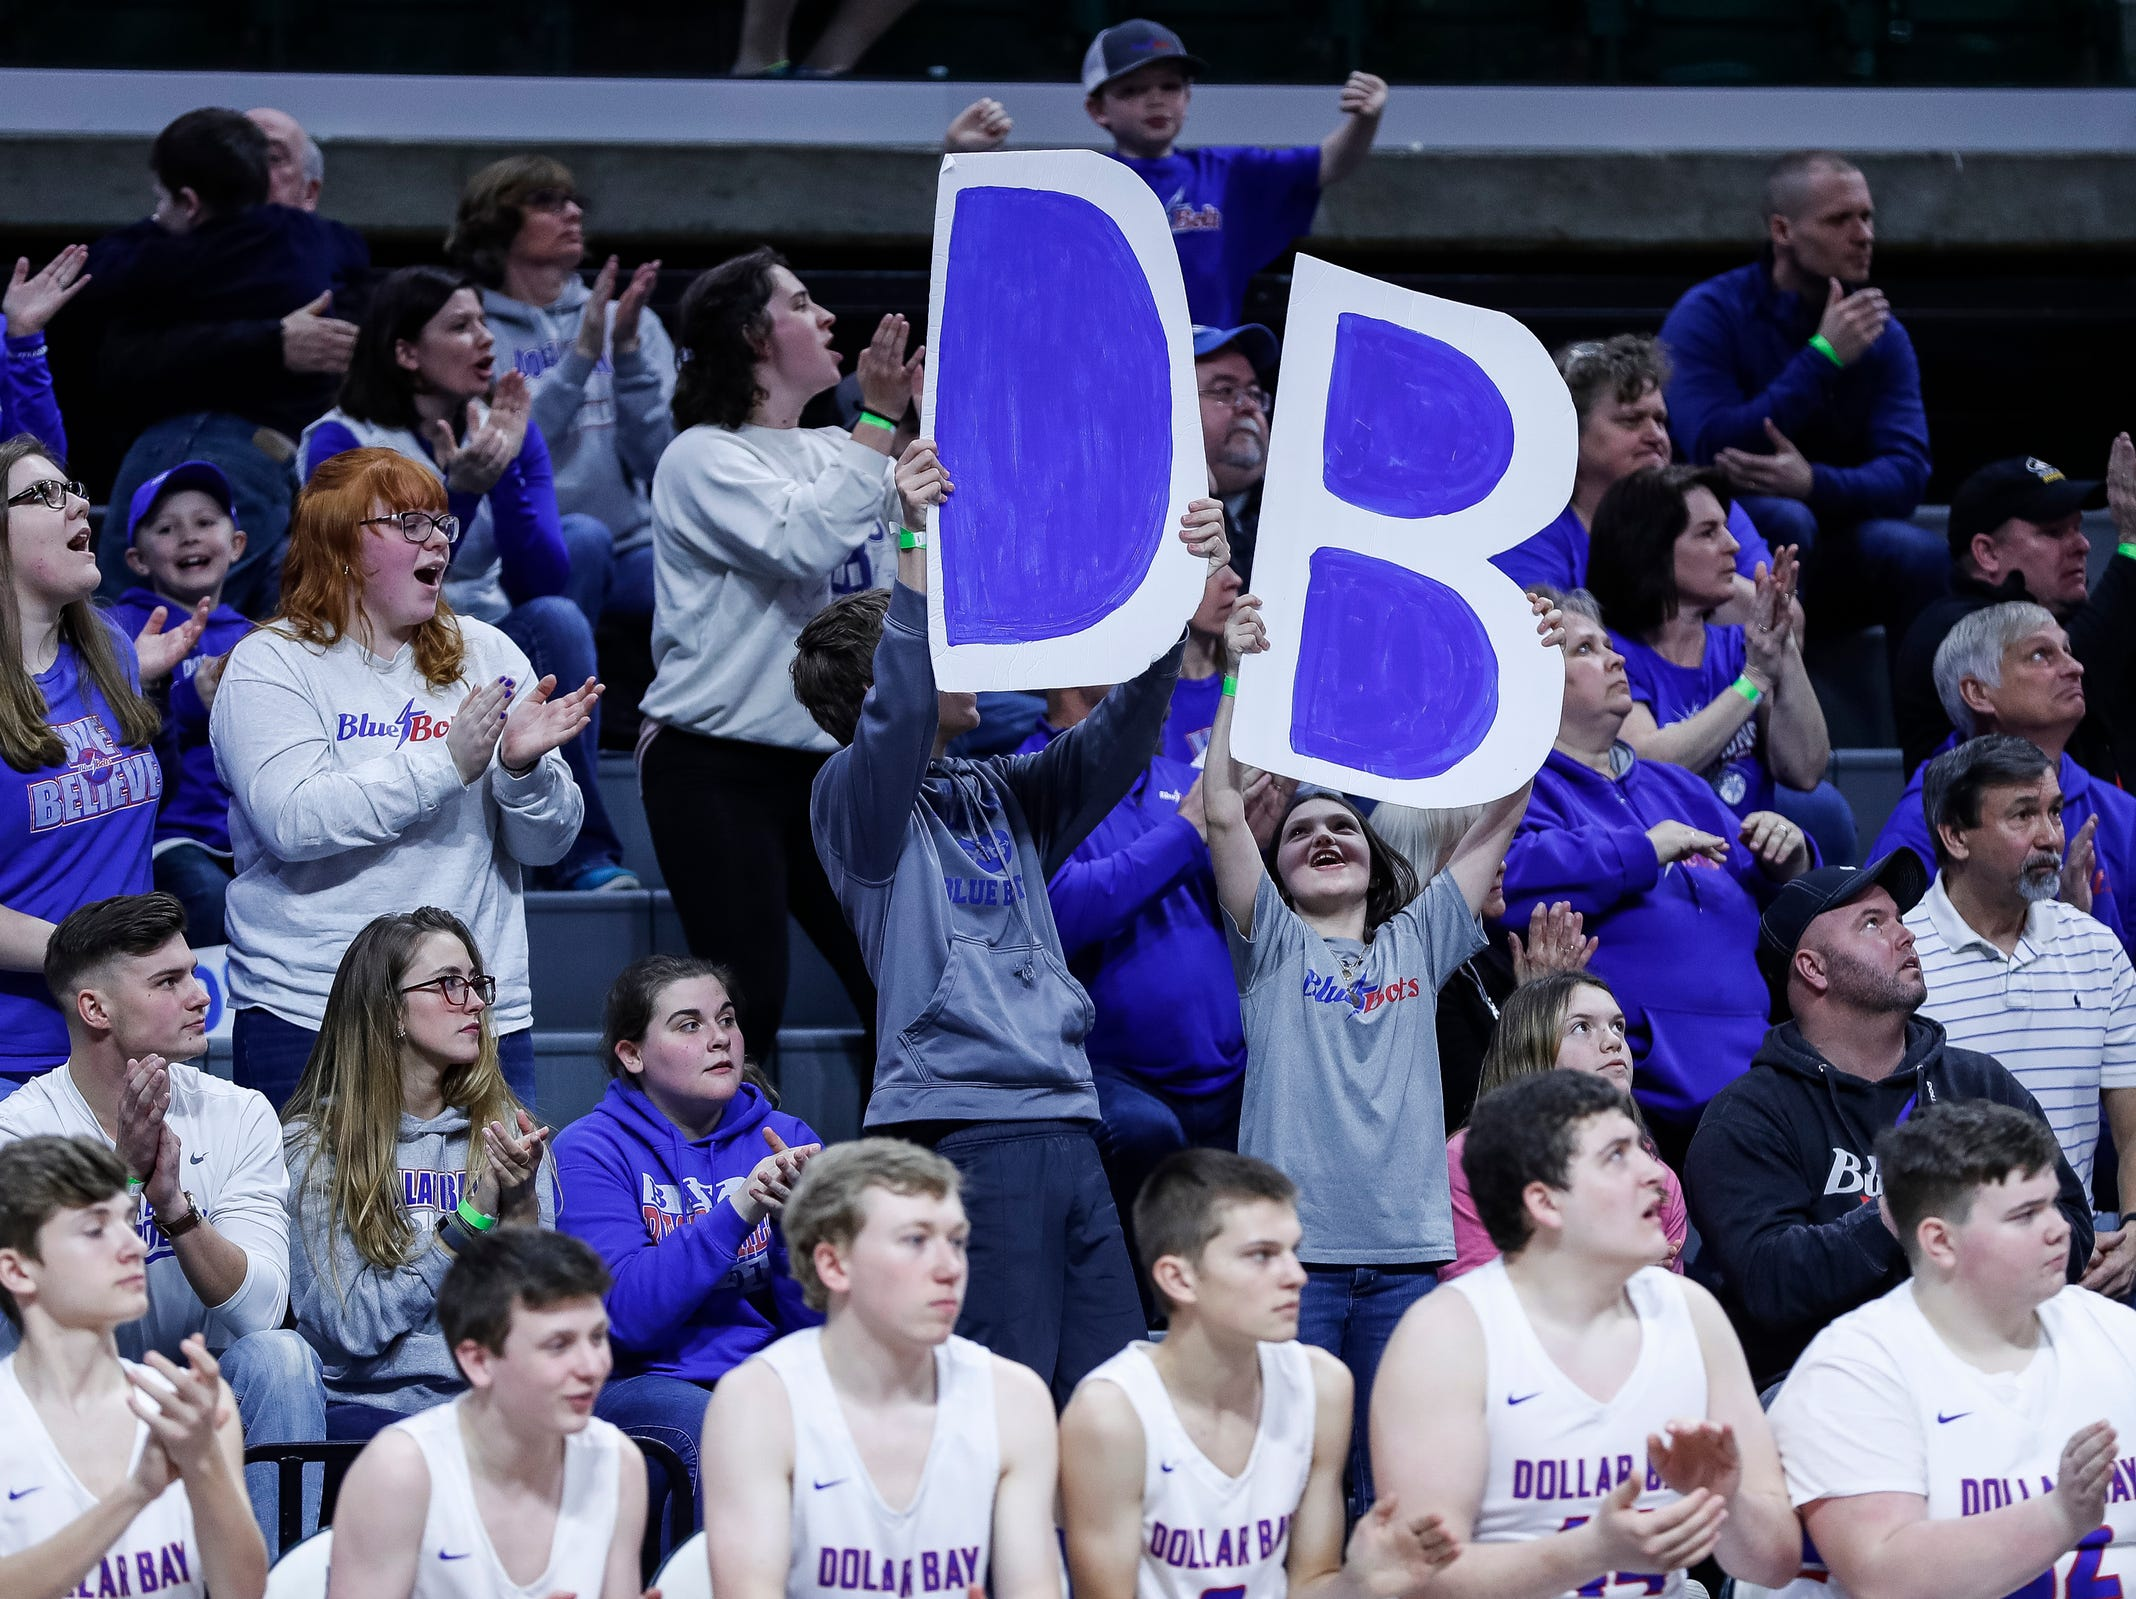 Dollar Bay fans cheer for the Blue Bolts during the first half of MHSAA Division 4 semifinal against Southfield Christian at the Breslin Center in East Lansing, Thursday, March 14, 2019.